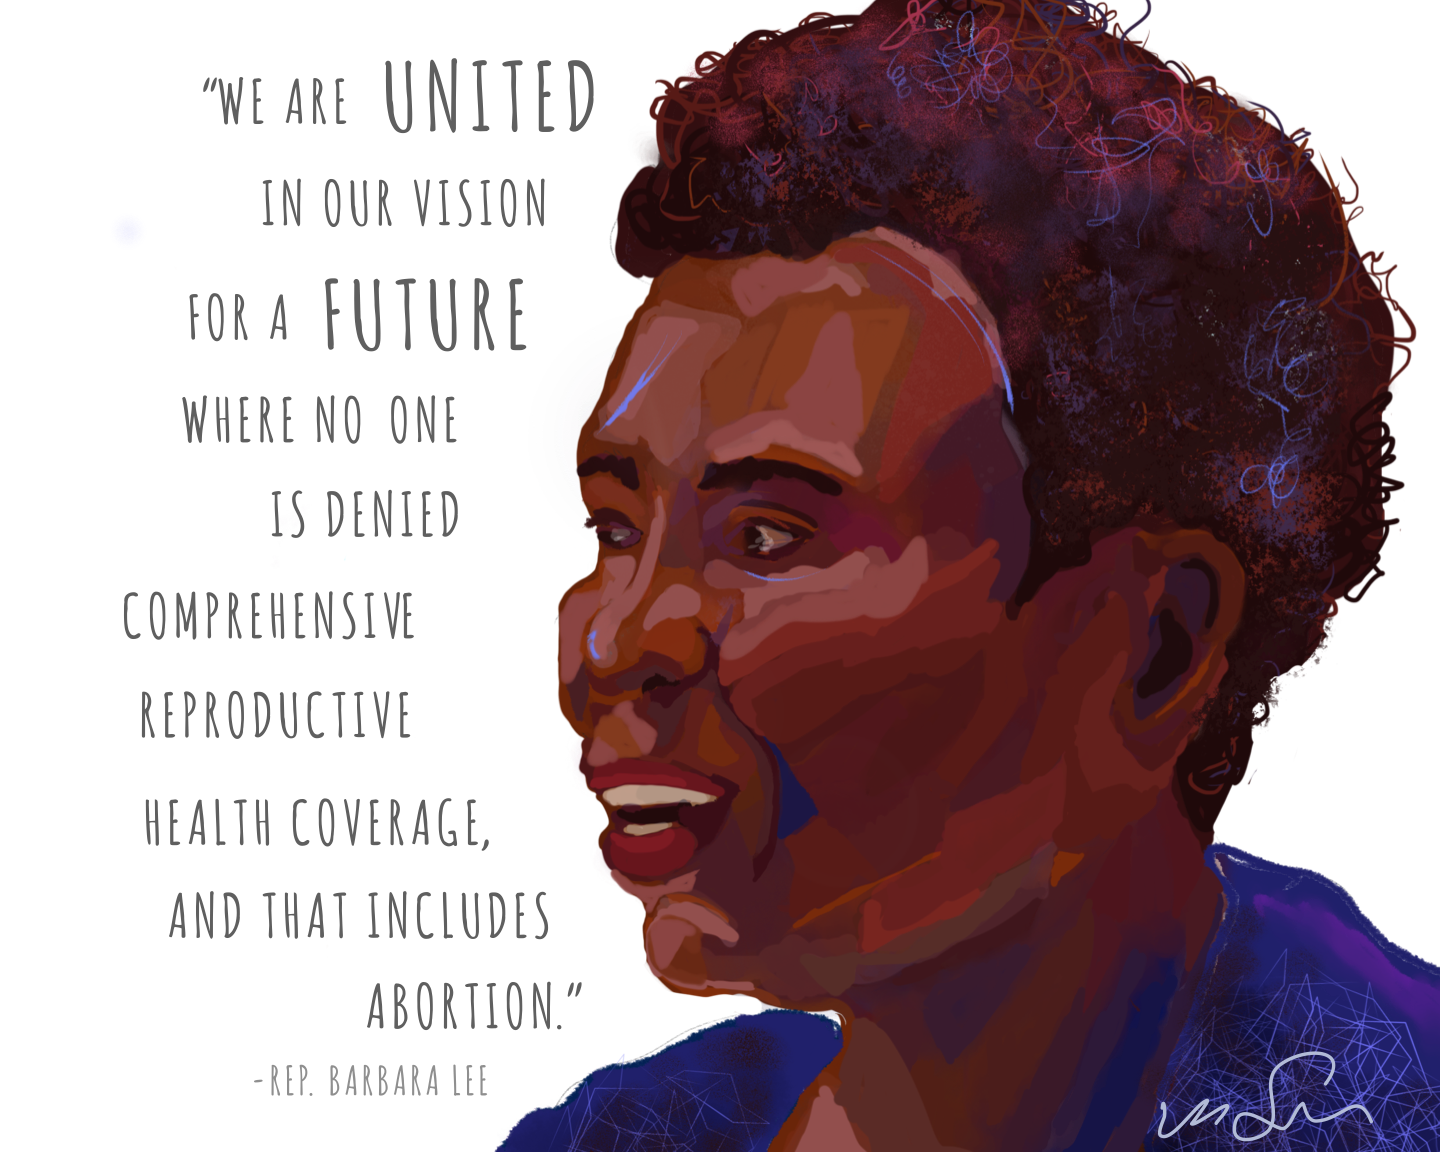 Image created for All Above All to celebrate Rep. Barbara Lee